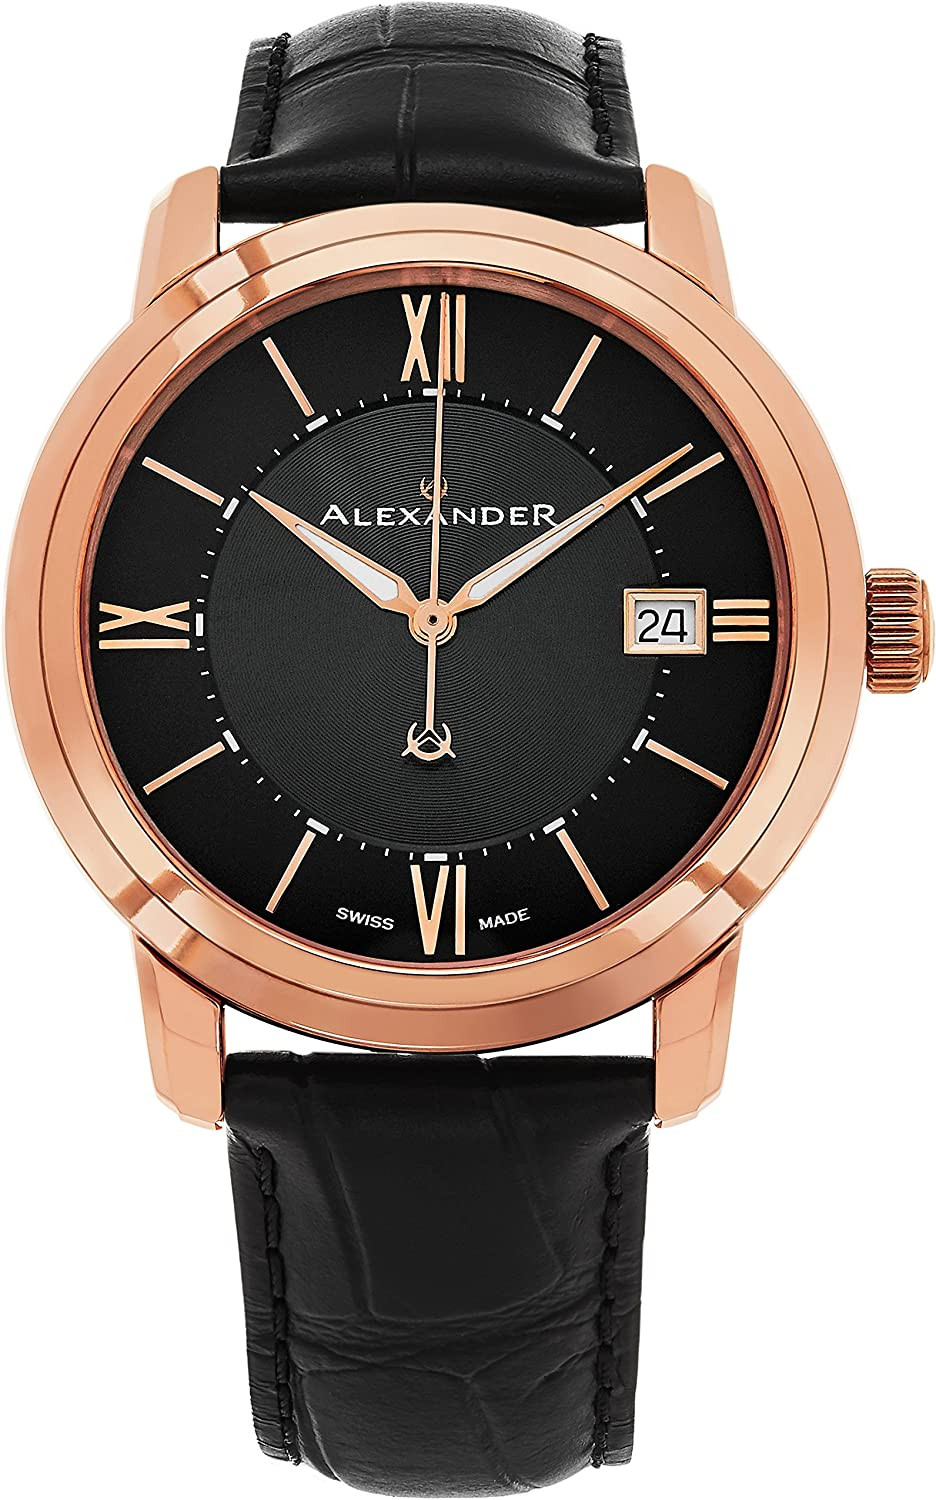 Alexander Heroic Macedon Mens Rose Gold Watch Leather Band - 40mm Analog Black Face with Second Hand Date and Sapphire Crystal - Classic Swiss Made Quartz Dress Watches for Men Gold Tone A111-05